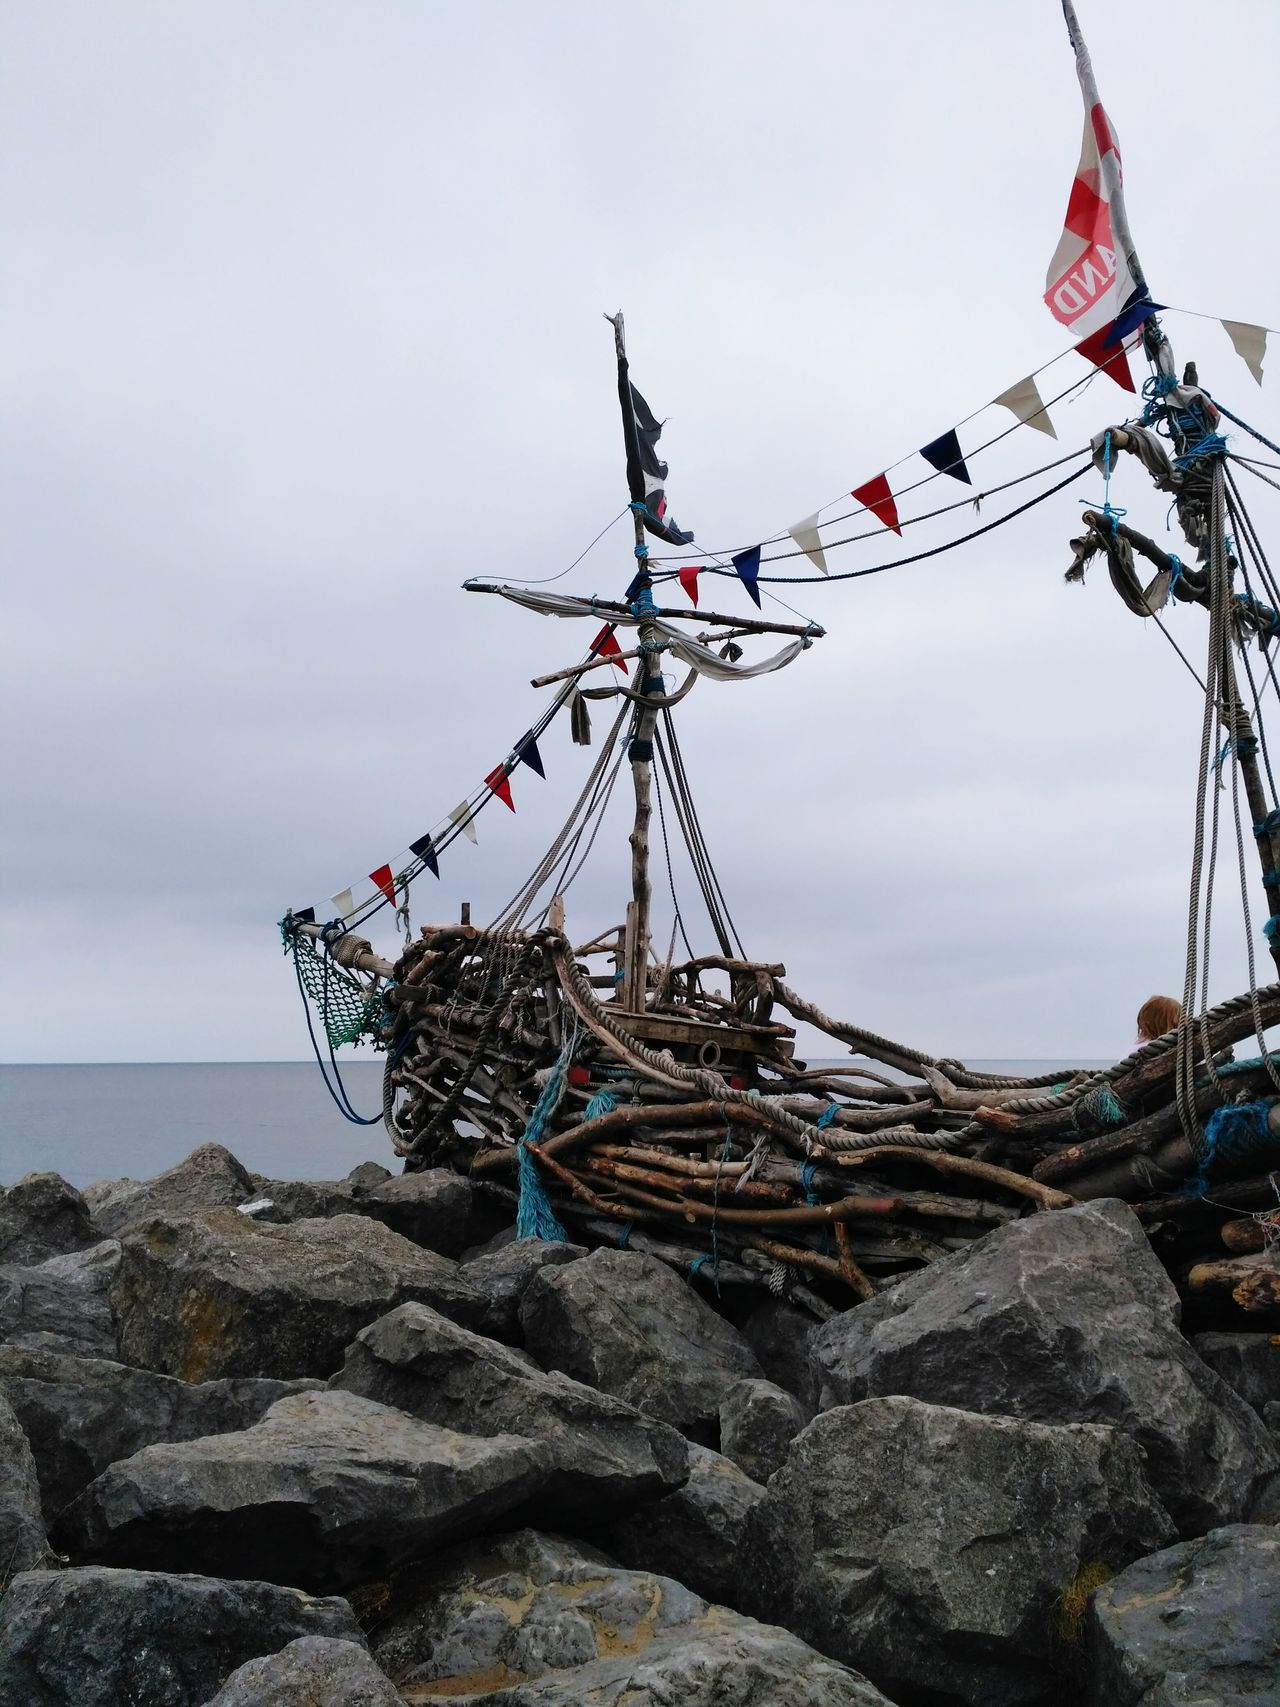 Pirate Pirate Ship Pirateship  Pirates Of The Caribbean Flag Pirate Flag Woodenboats Beach Nopeople Sea Fishing Net Sky Buoy Horizon Over Water Day Outdoors Water Nature No People Tall Ship